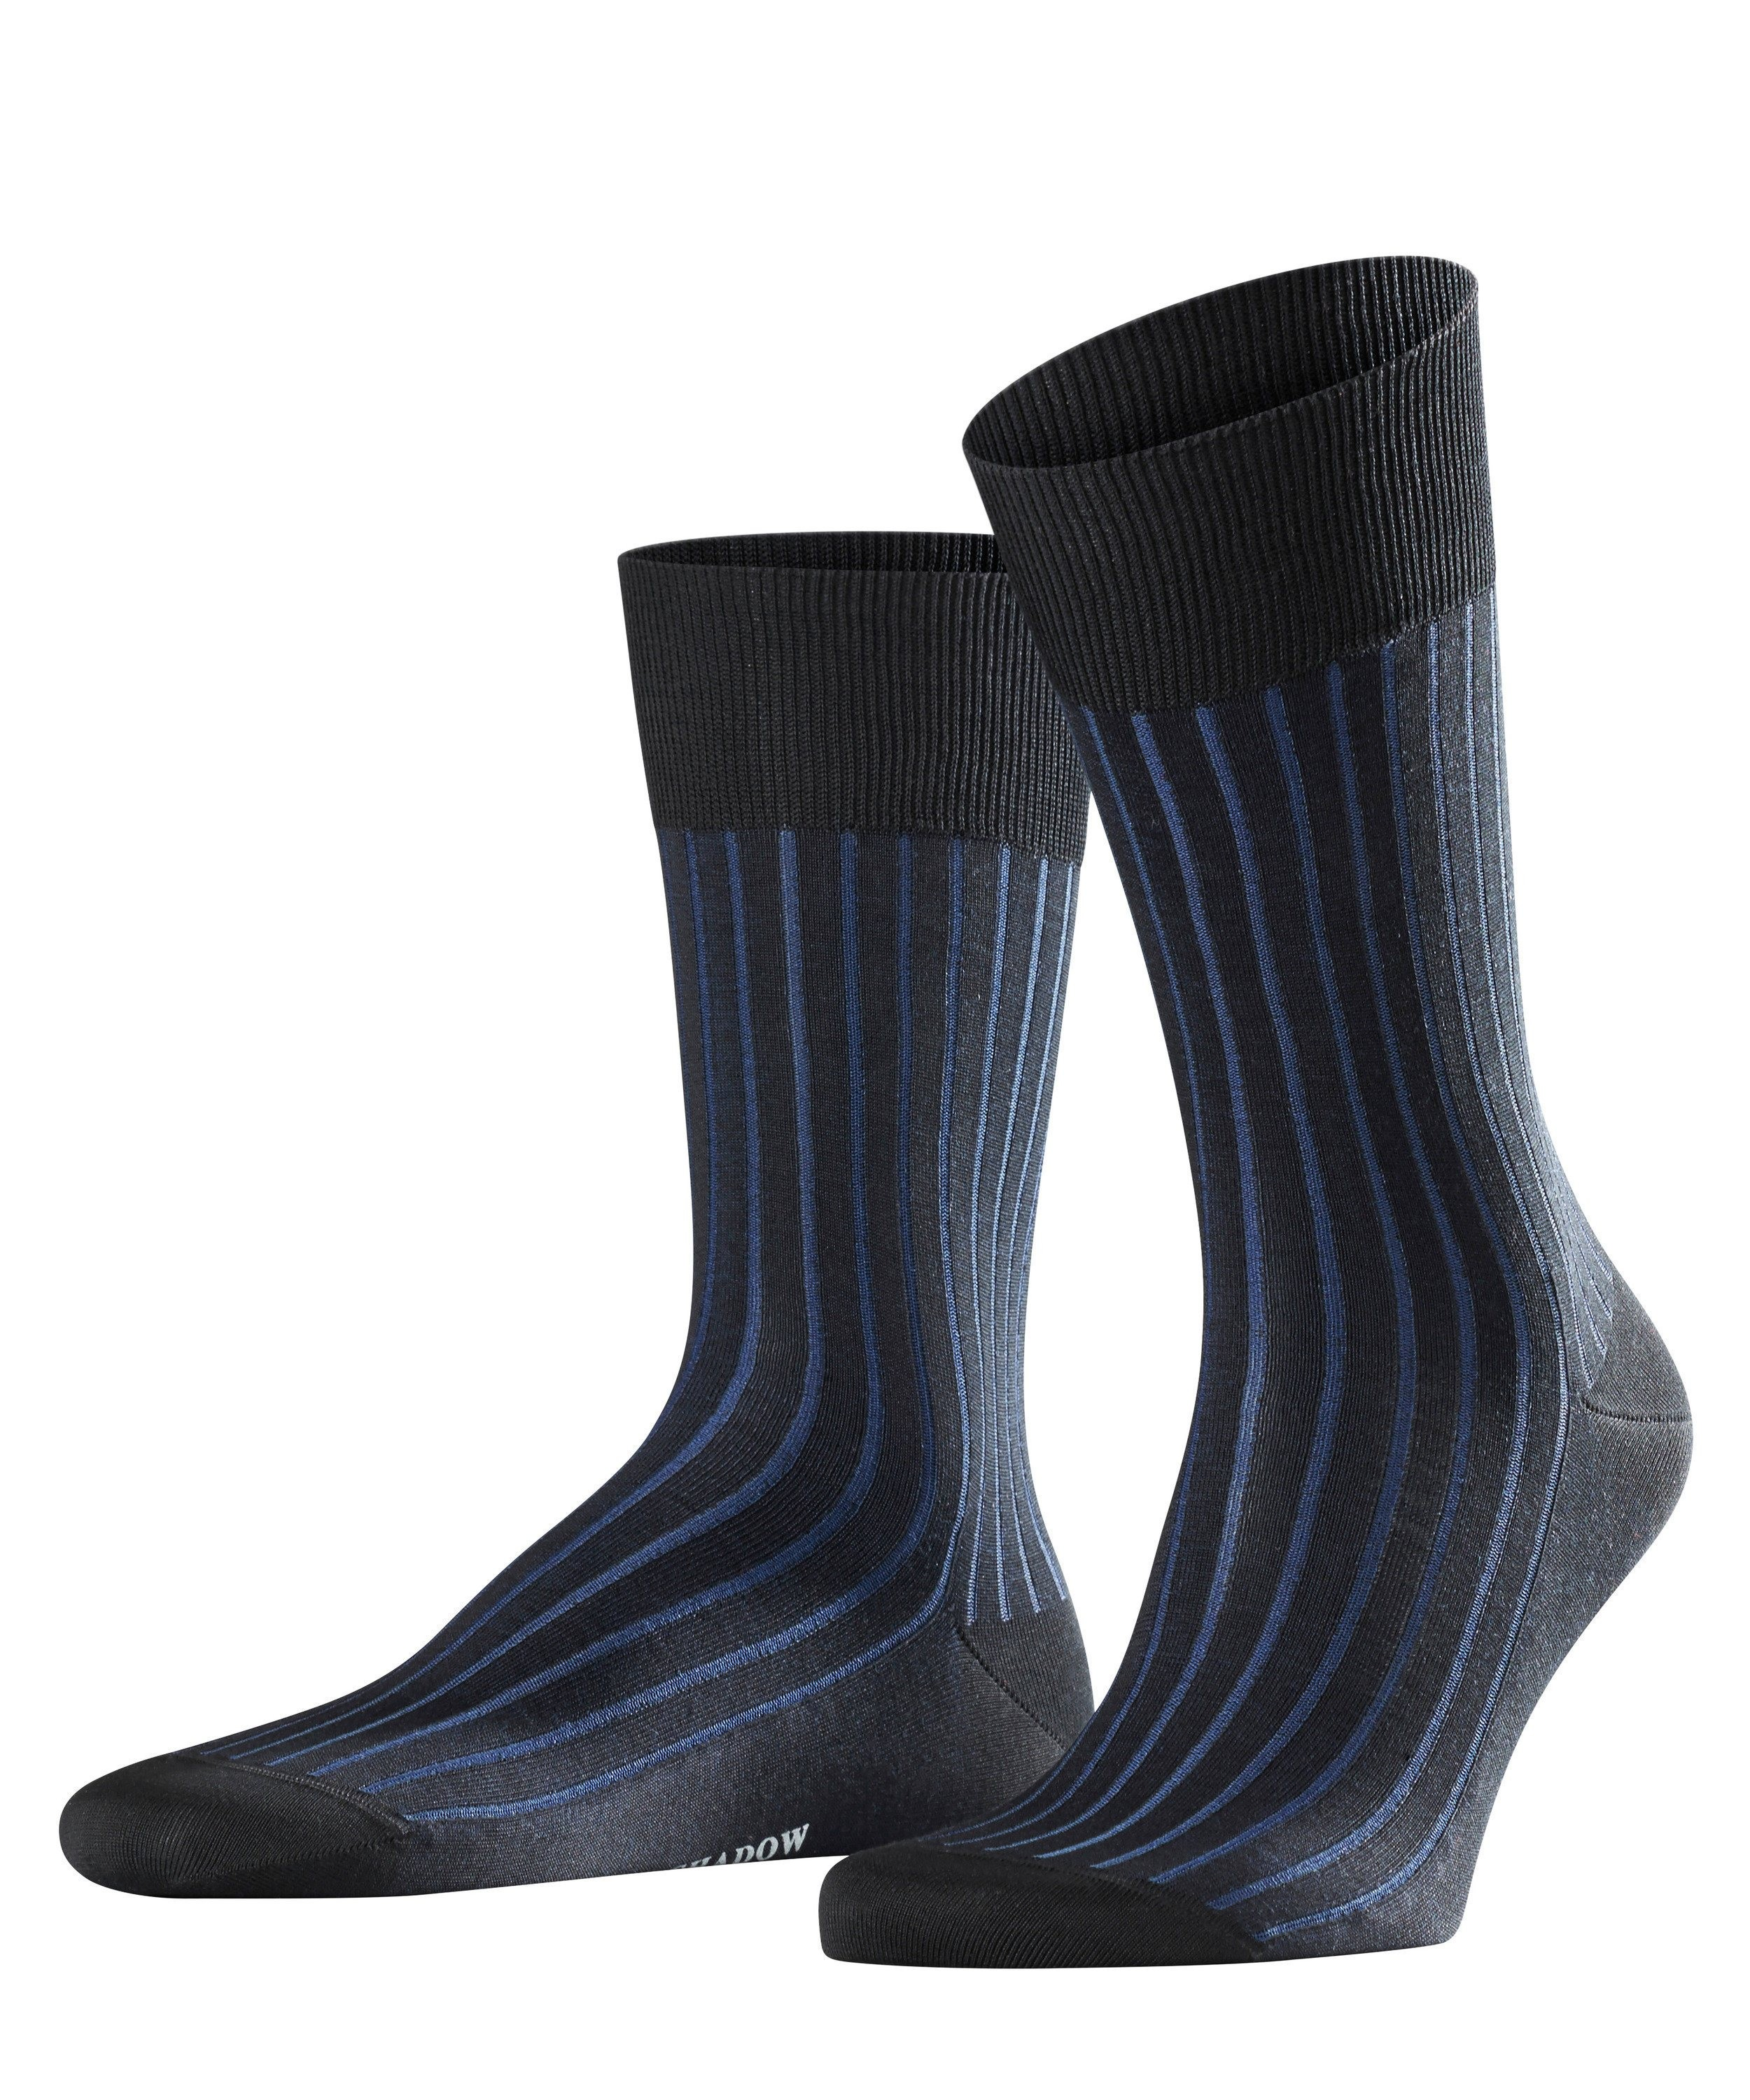 Chaussette Rayée Homme - 95% Coton - Falke Men Shadow 14648 Black/Blue 3003